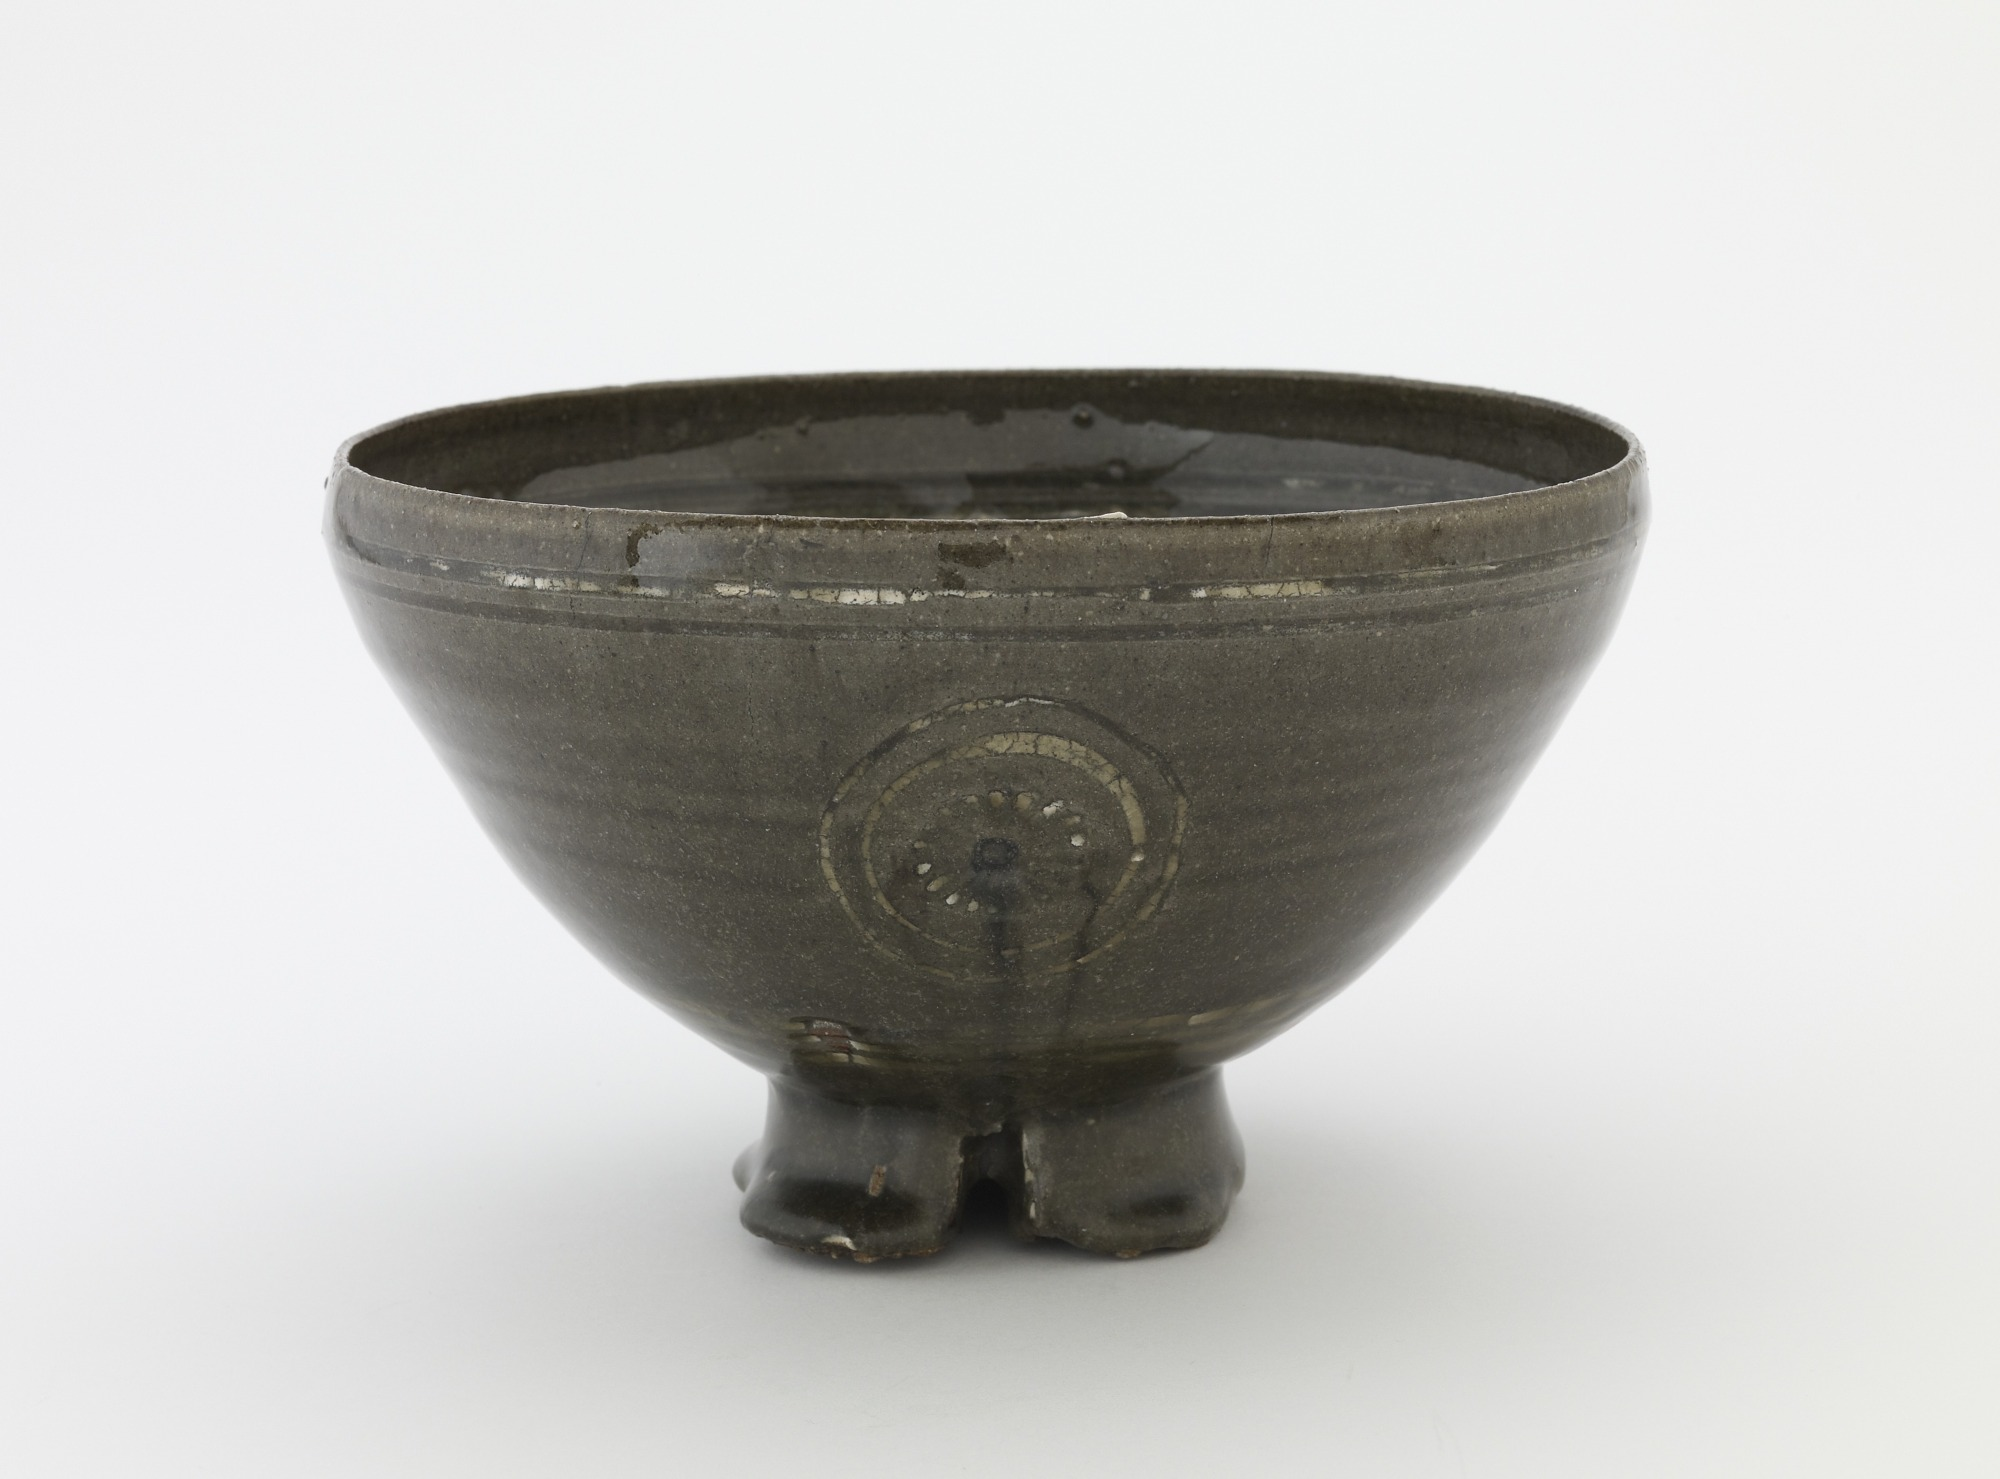 Tea bowl in style of inlaid Goryeo celadon ware, profile